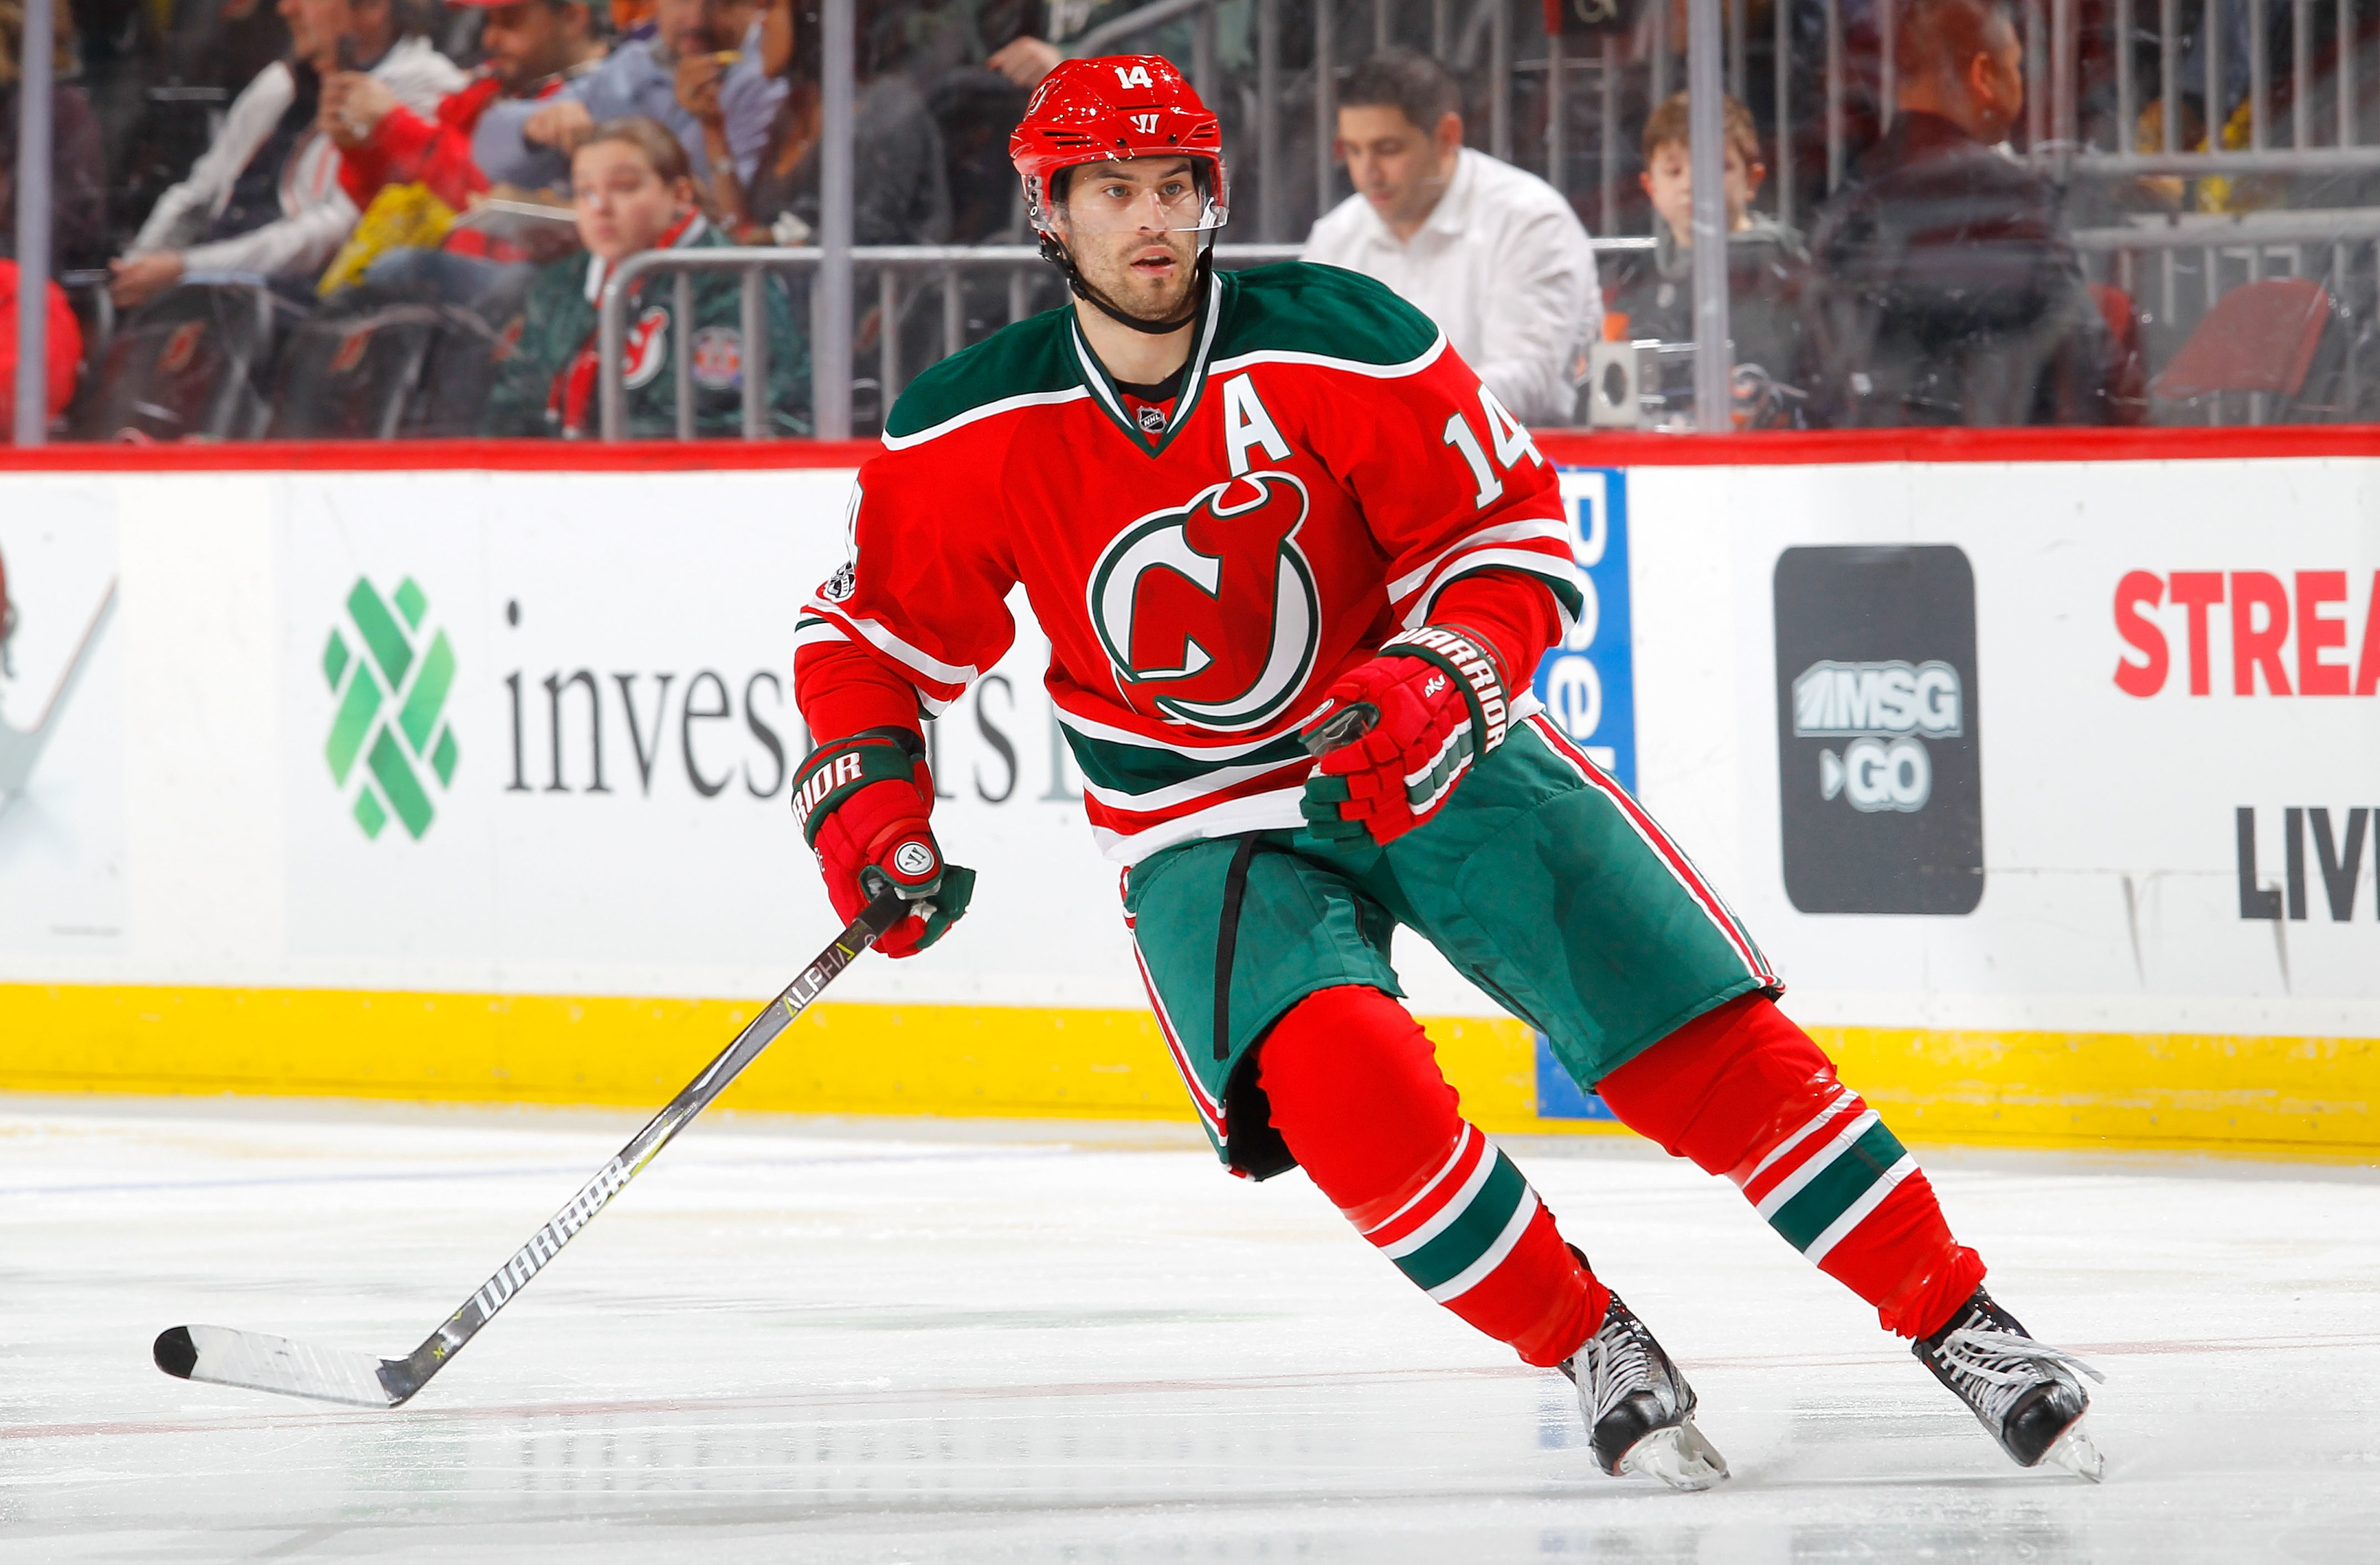 New Jersey Devils: Reported Green Jersey Is A Terrible Idea